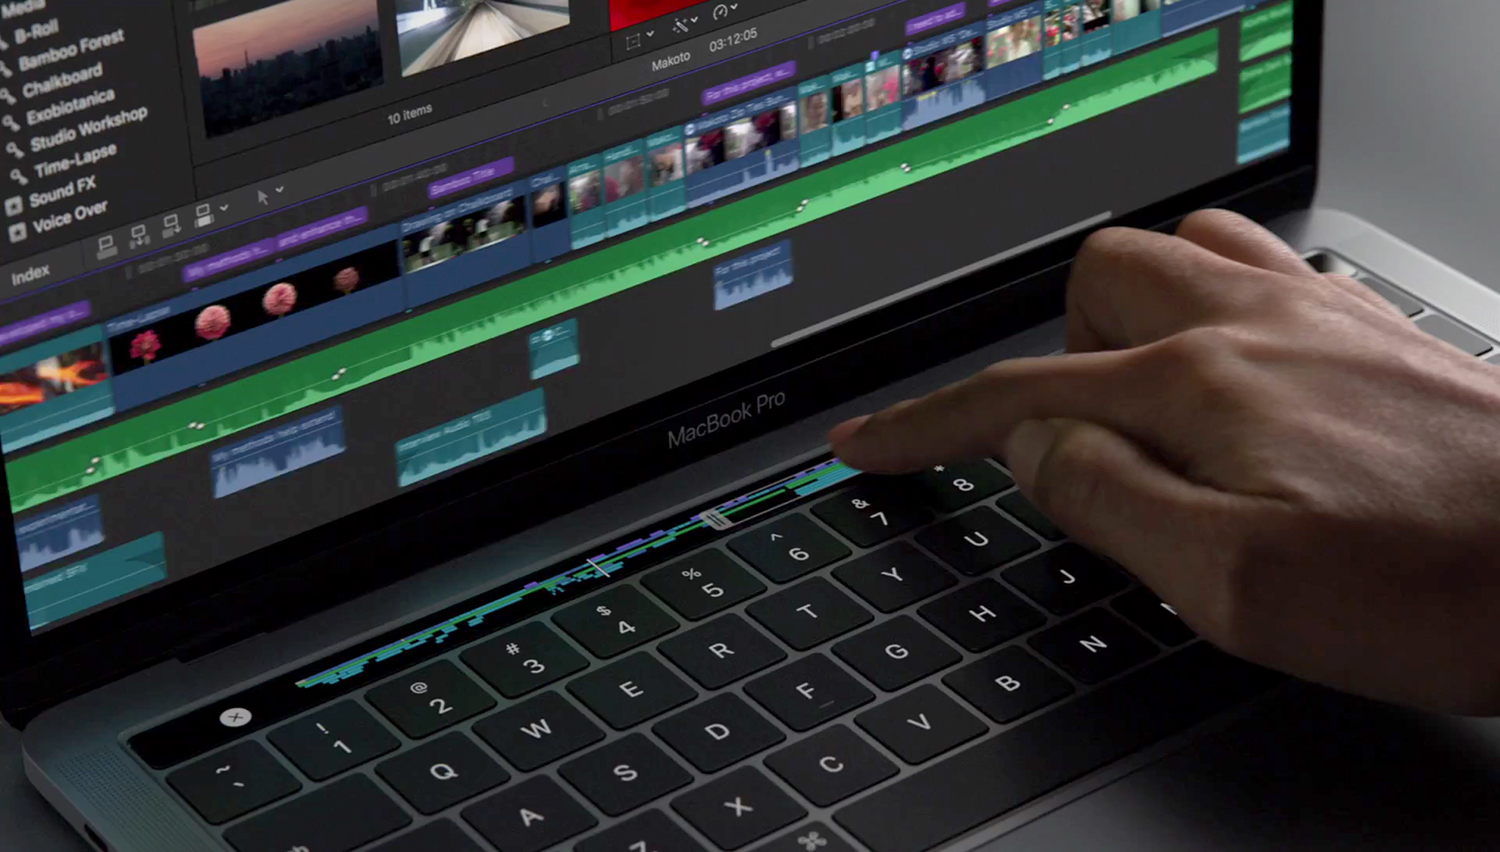 apple marketing vp phil schiller responds to backlash over macbook pro design